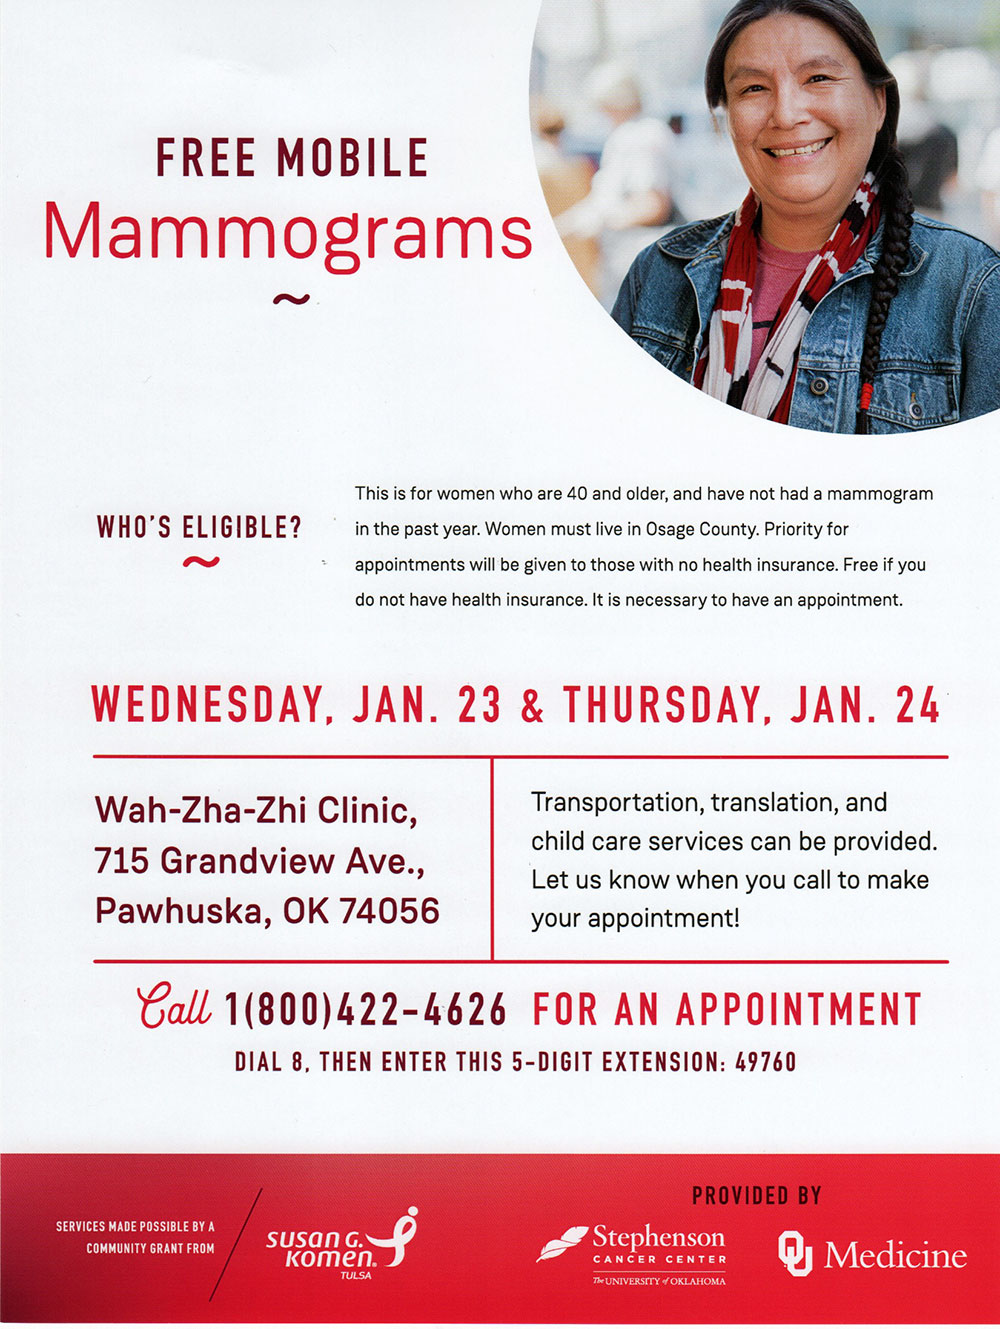 Mobile mammogram clinic scheduled Jan. 23-24 at Wah-Zha-Zhi Health Center